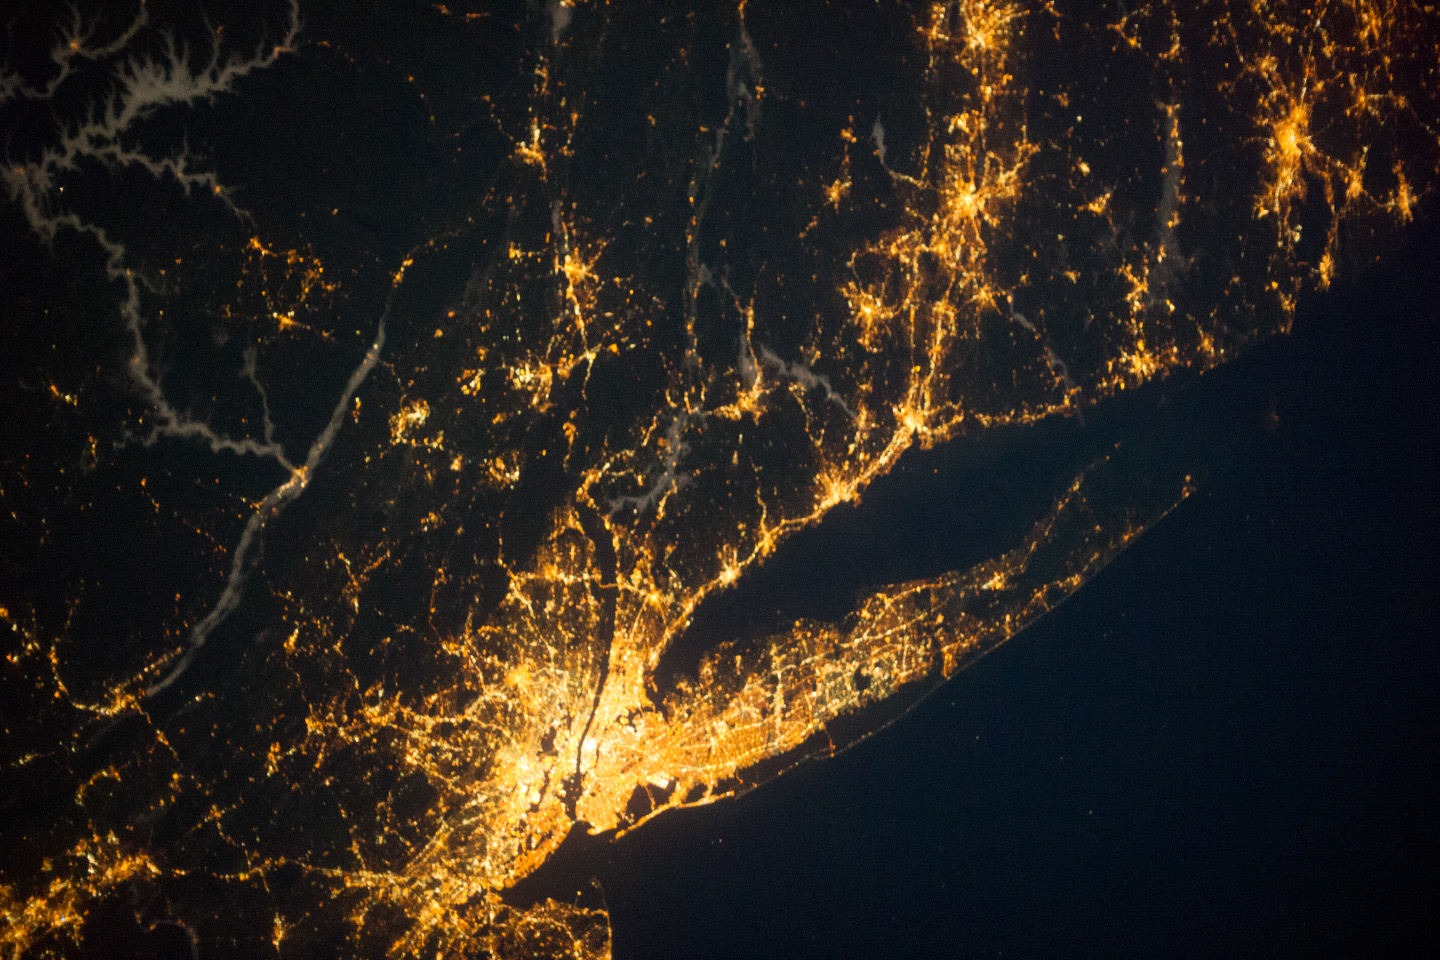 Today's Image of the Day comes thanks to the NASA Earth Observatory and features a look at New York City and Long Island Sound at night.